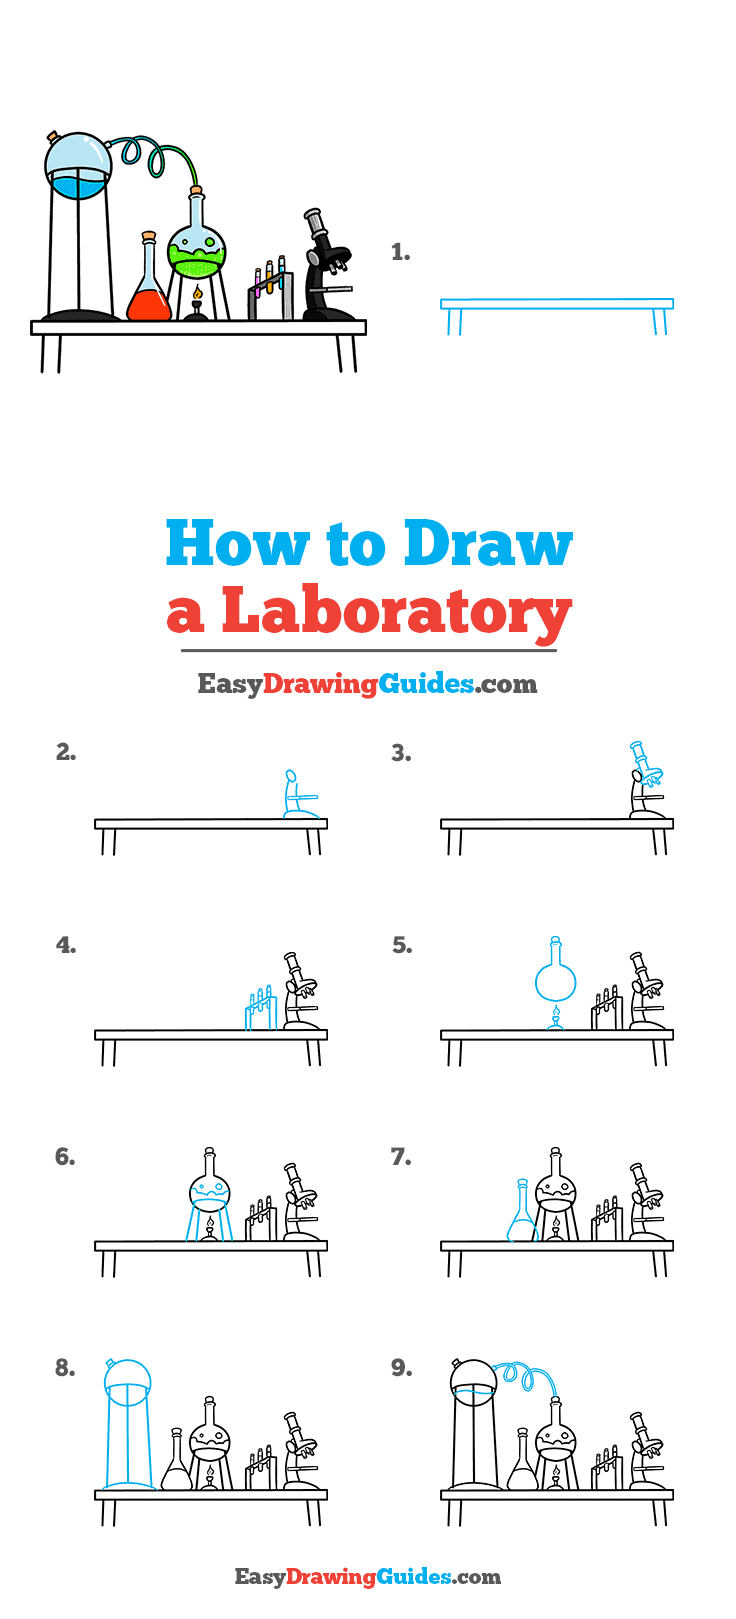 How to Draw a Laboratory Step by Step Tutorial Image